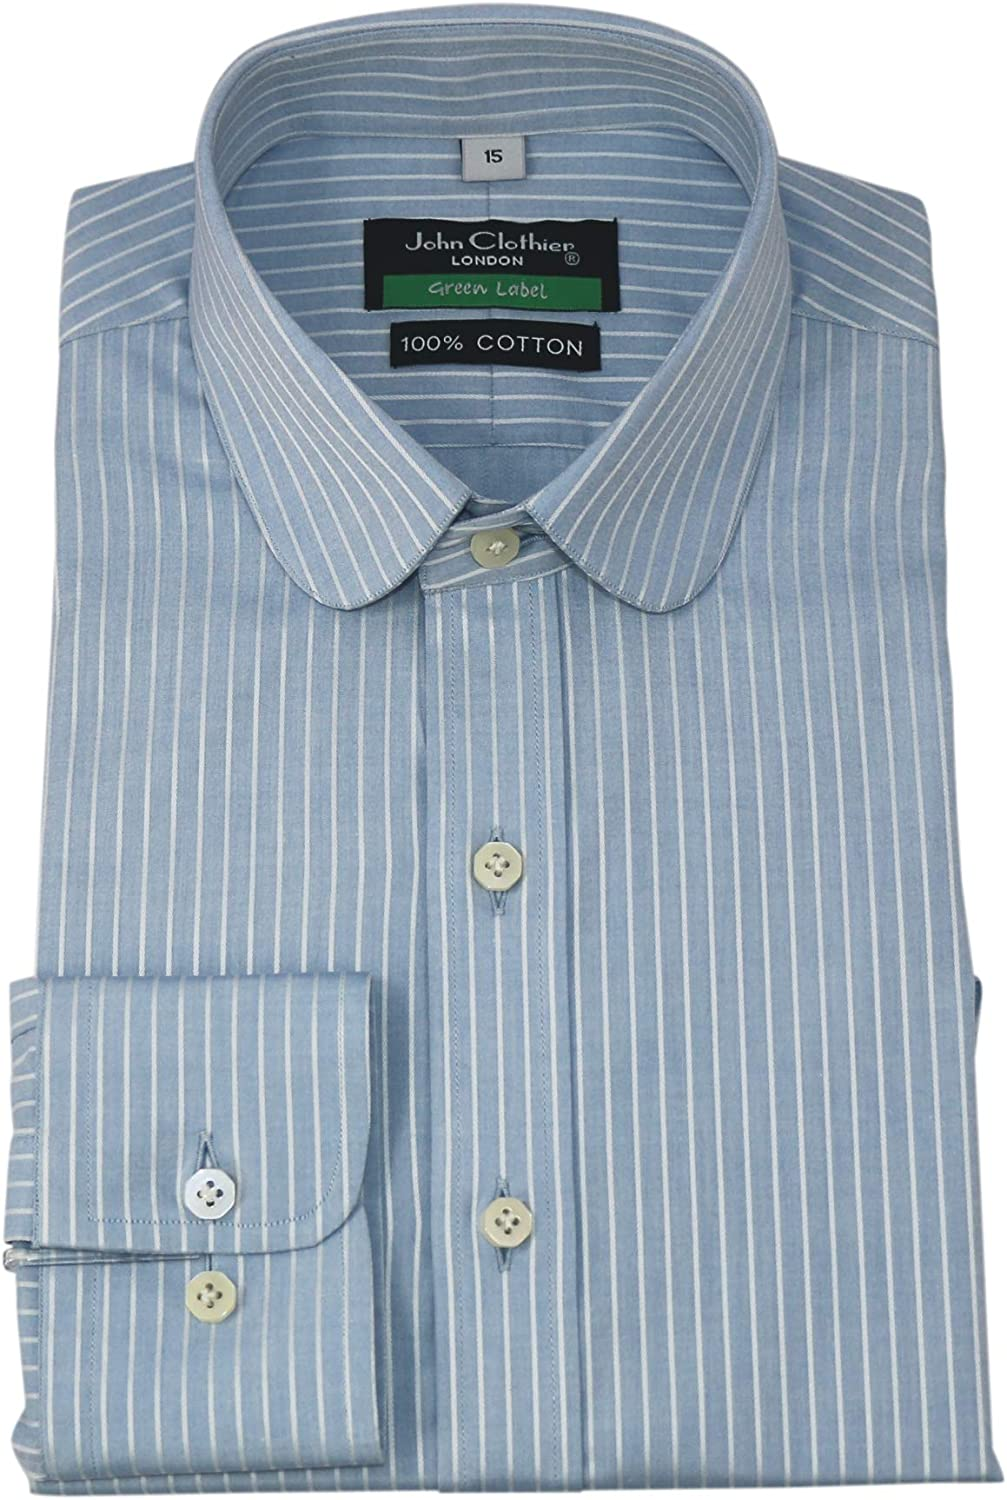 Mens Vintage Shirts – Casual, Dress, T-shirts, Polos Penny Collar Mens Shirt Blue White Stripes Peaky Blinders Round Club 100% Cotton 200-06 $89.99 AT vintagedancer.com